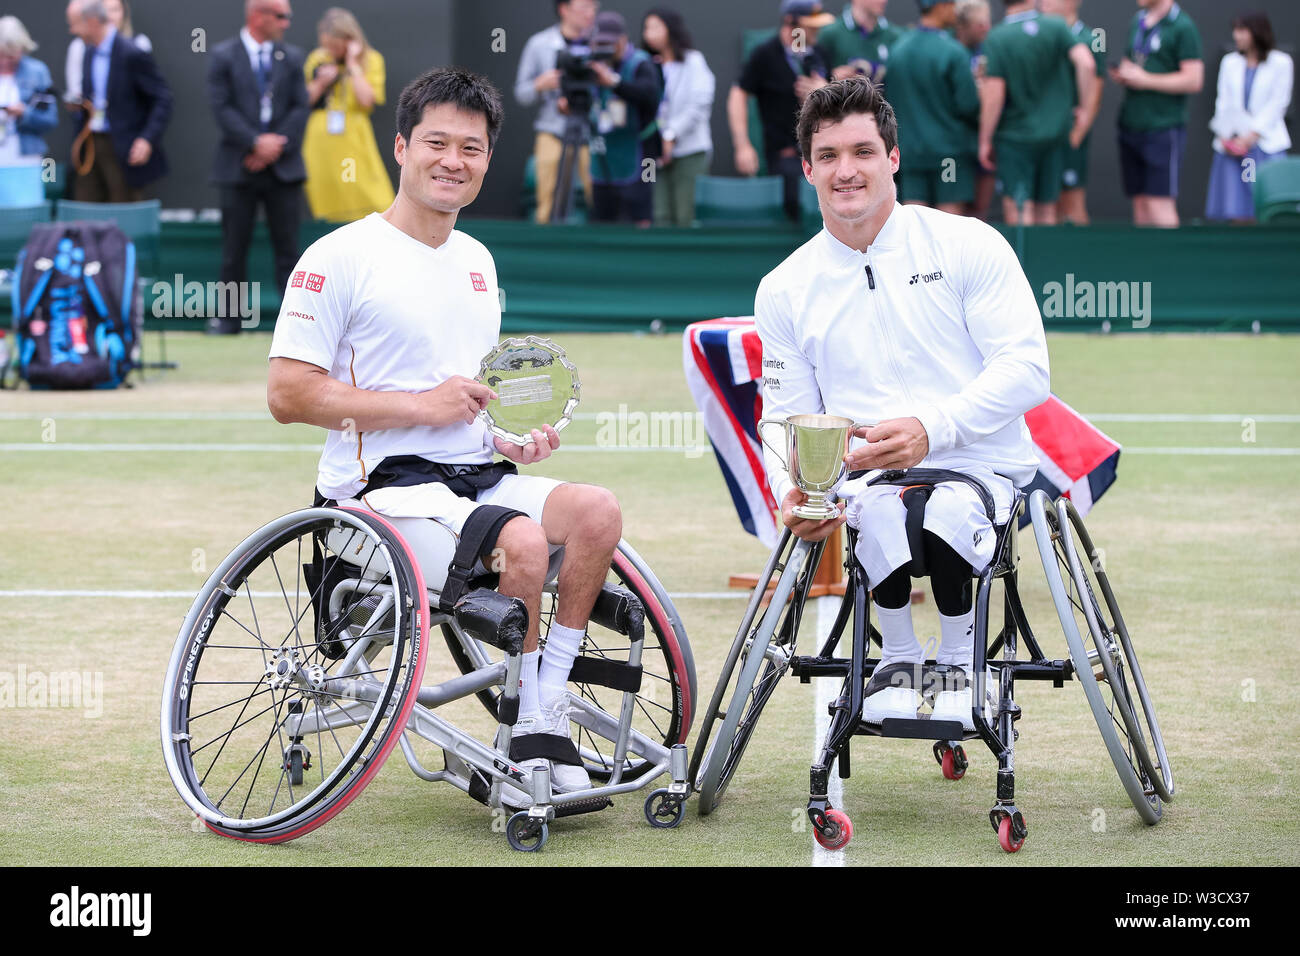 Wimbledon, London, UK. 14th July 2019. Shingo Kunieda of Japan and Gustavo Fernandez of Argentina pose with the trophy after the men's wheelchair singles final match of the Wimbledon Lawn Tennis Championships at the All England Lawn Tennis and Croquet Club in London, England on July 14, 2019. Credit: AFLO/Alamy Live News - Stock Image